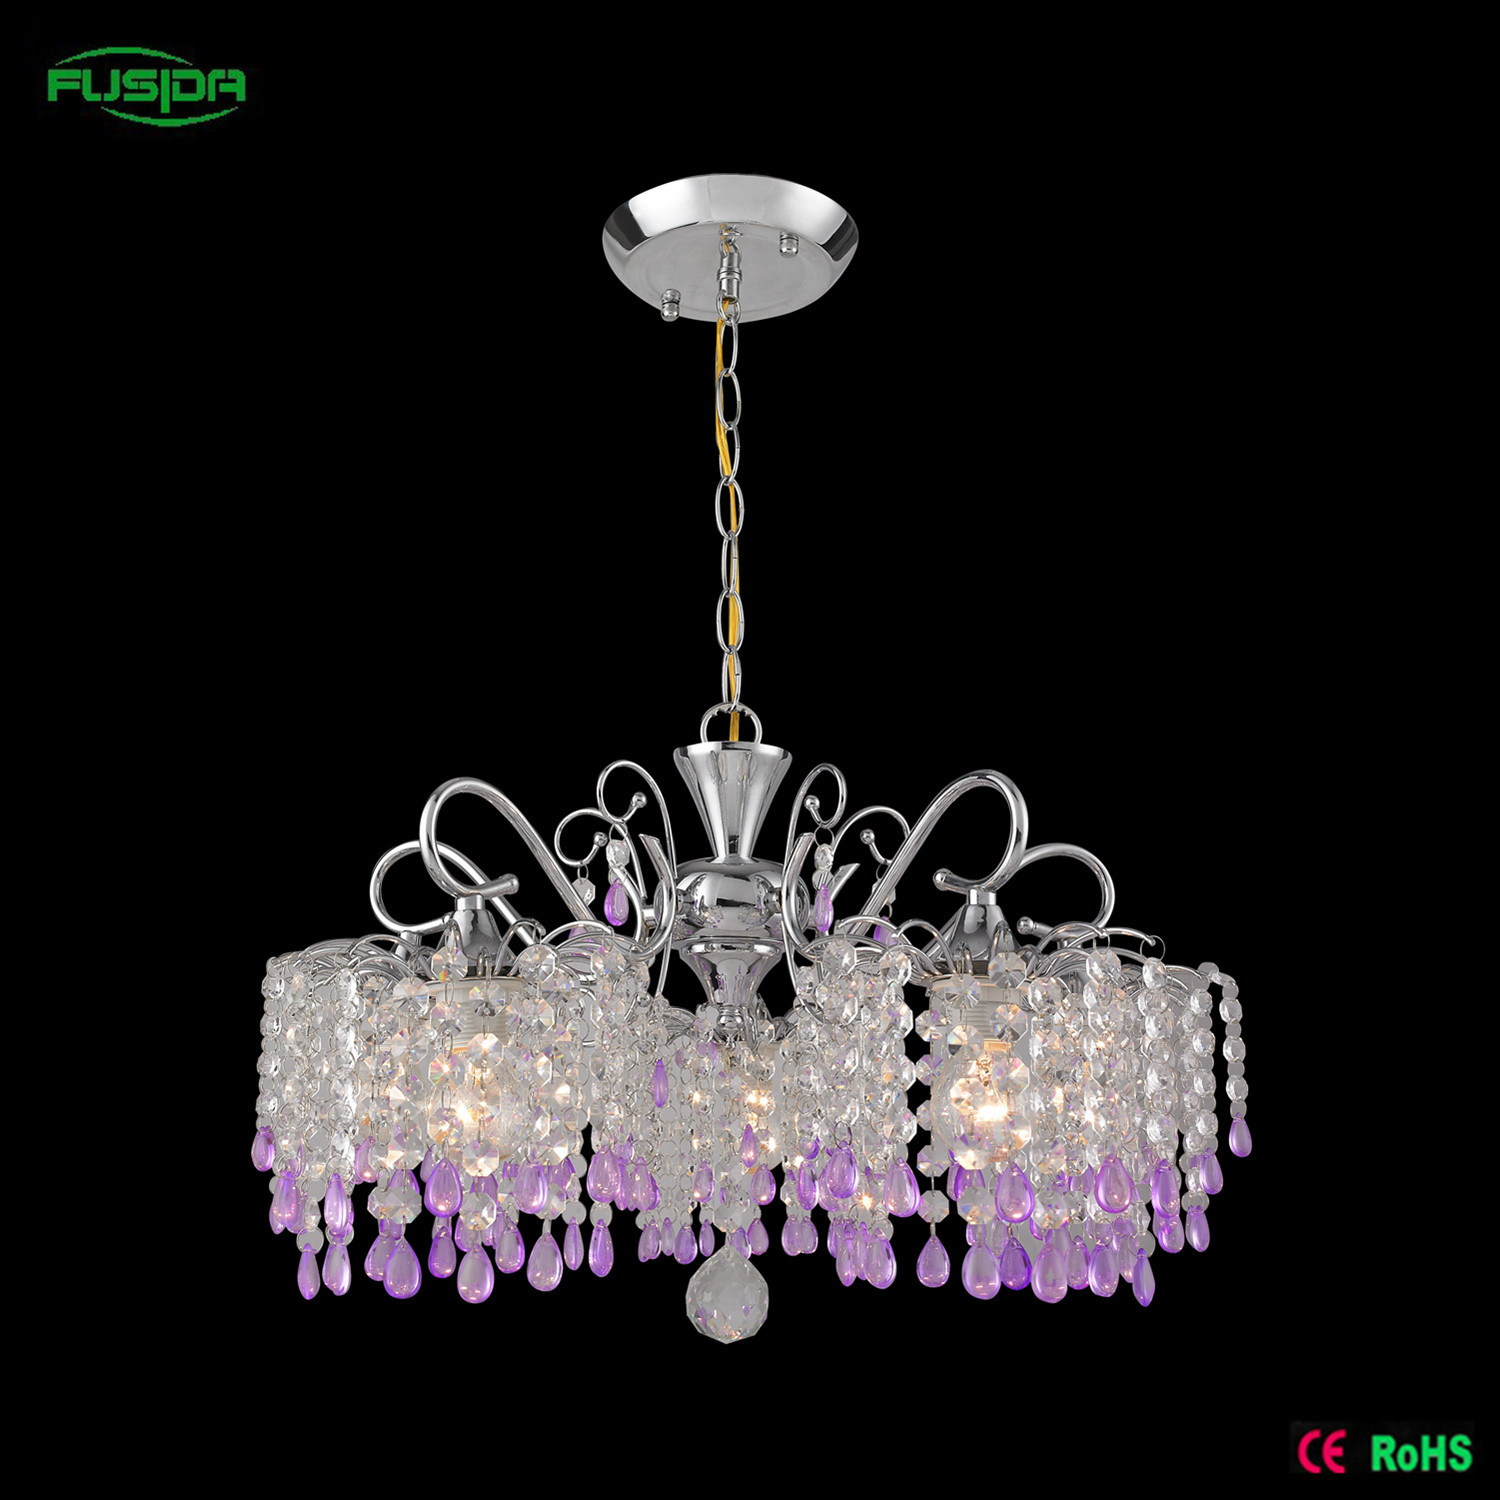 Hot Item Colorful Crystal Chandelier Lighting For Hotel